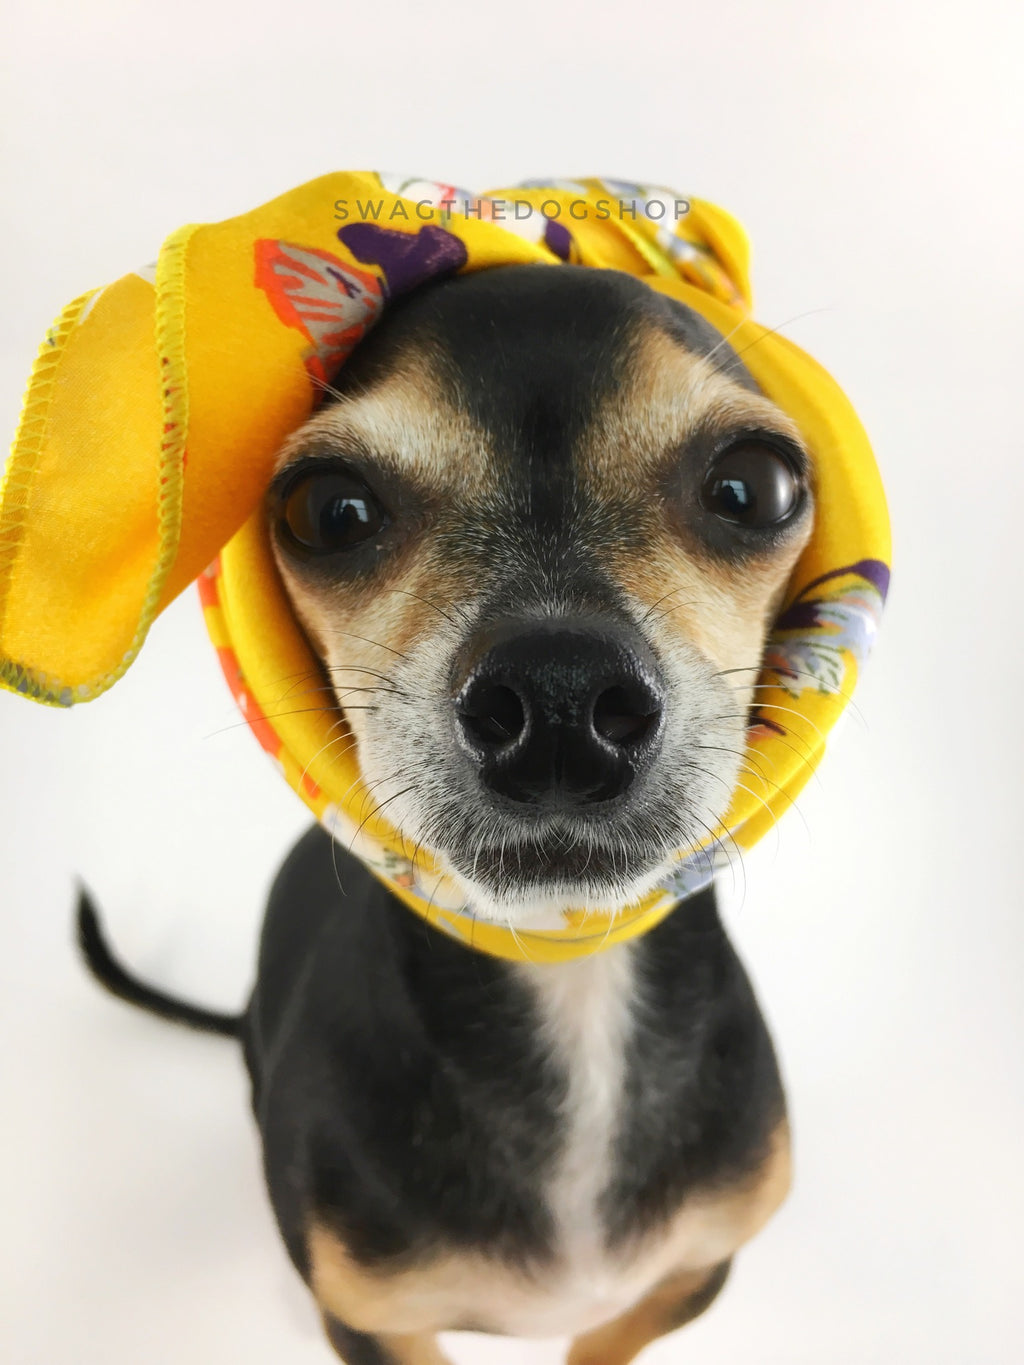 Yellow Wild Flower Swagdana Scarf - Bust of Cute Chihuahua Wearing Swagdana Scarf as Headband. Dog Bandana. Dog Scarf.